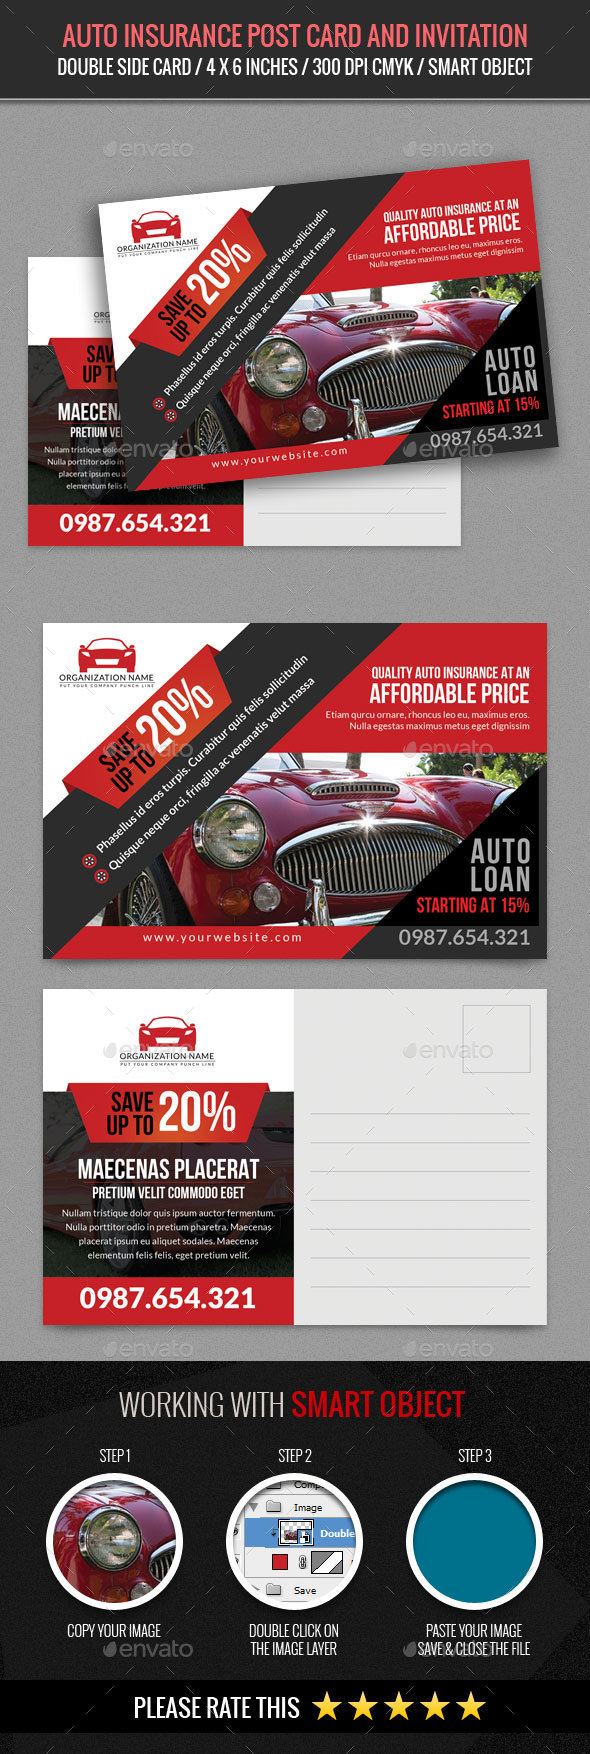 Auto Show and Sales Post Card Template - Cards & Invites Print Templates